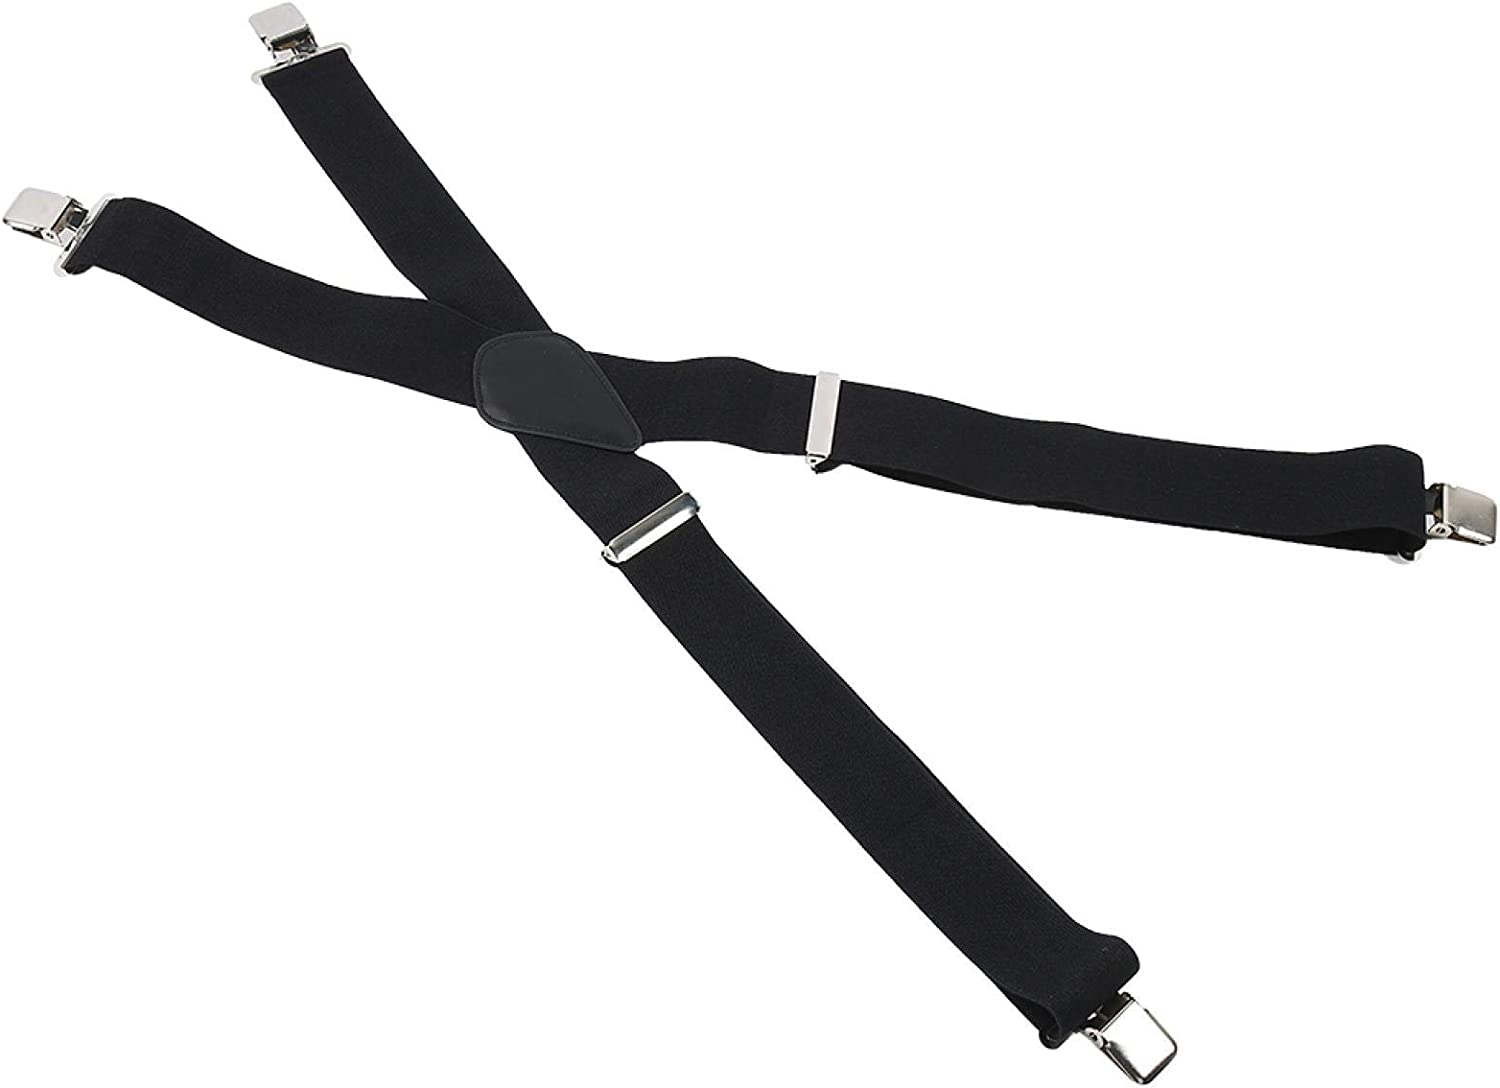 Chiciris 50Mm Lightweight Men'S Wide Suspenders, XBack Suspenders, Thick And Soft Dress Pants For Home Trousers Jeans School Boys